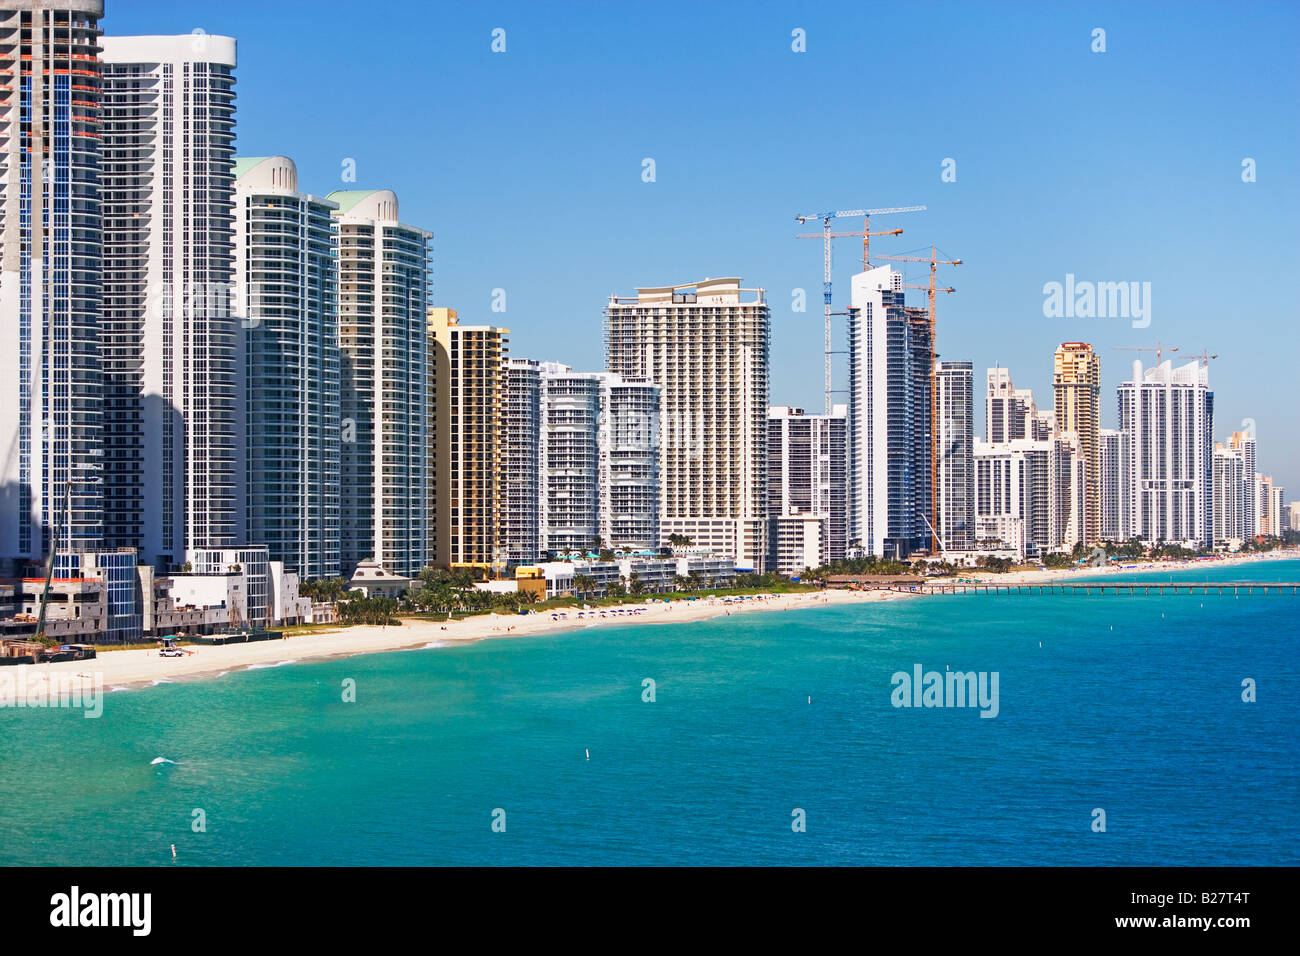 Condominiums along shore, Fort Lauderdale, Florida, United States Stock Photo